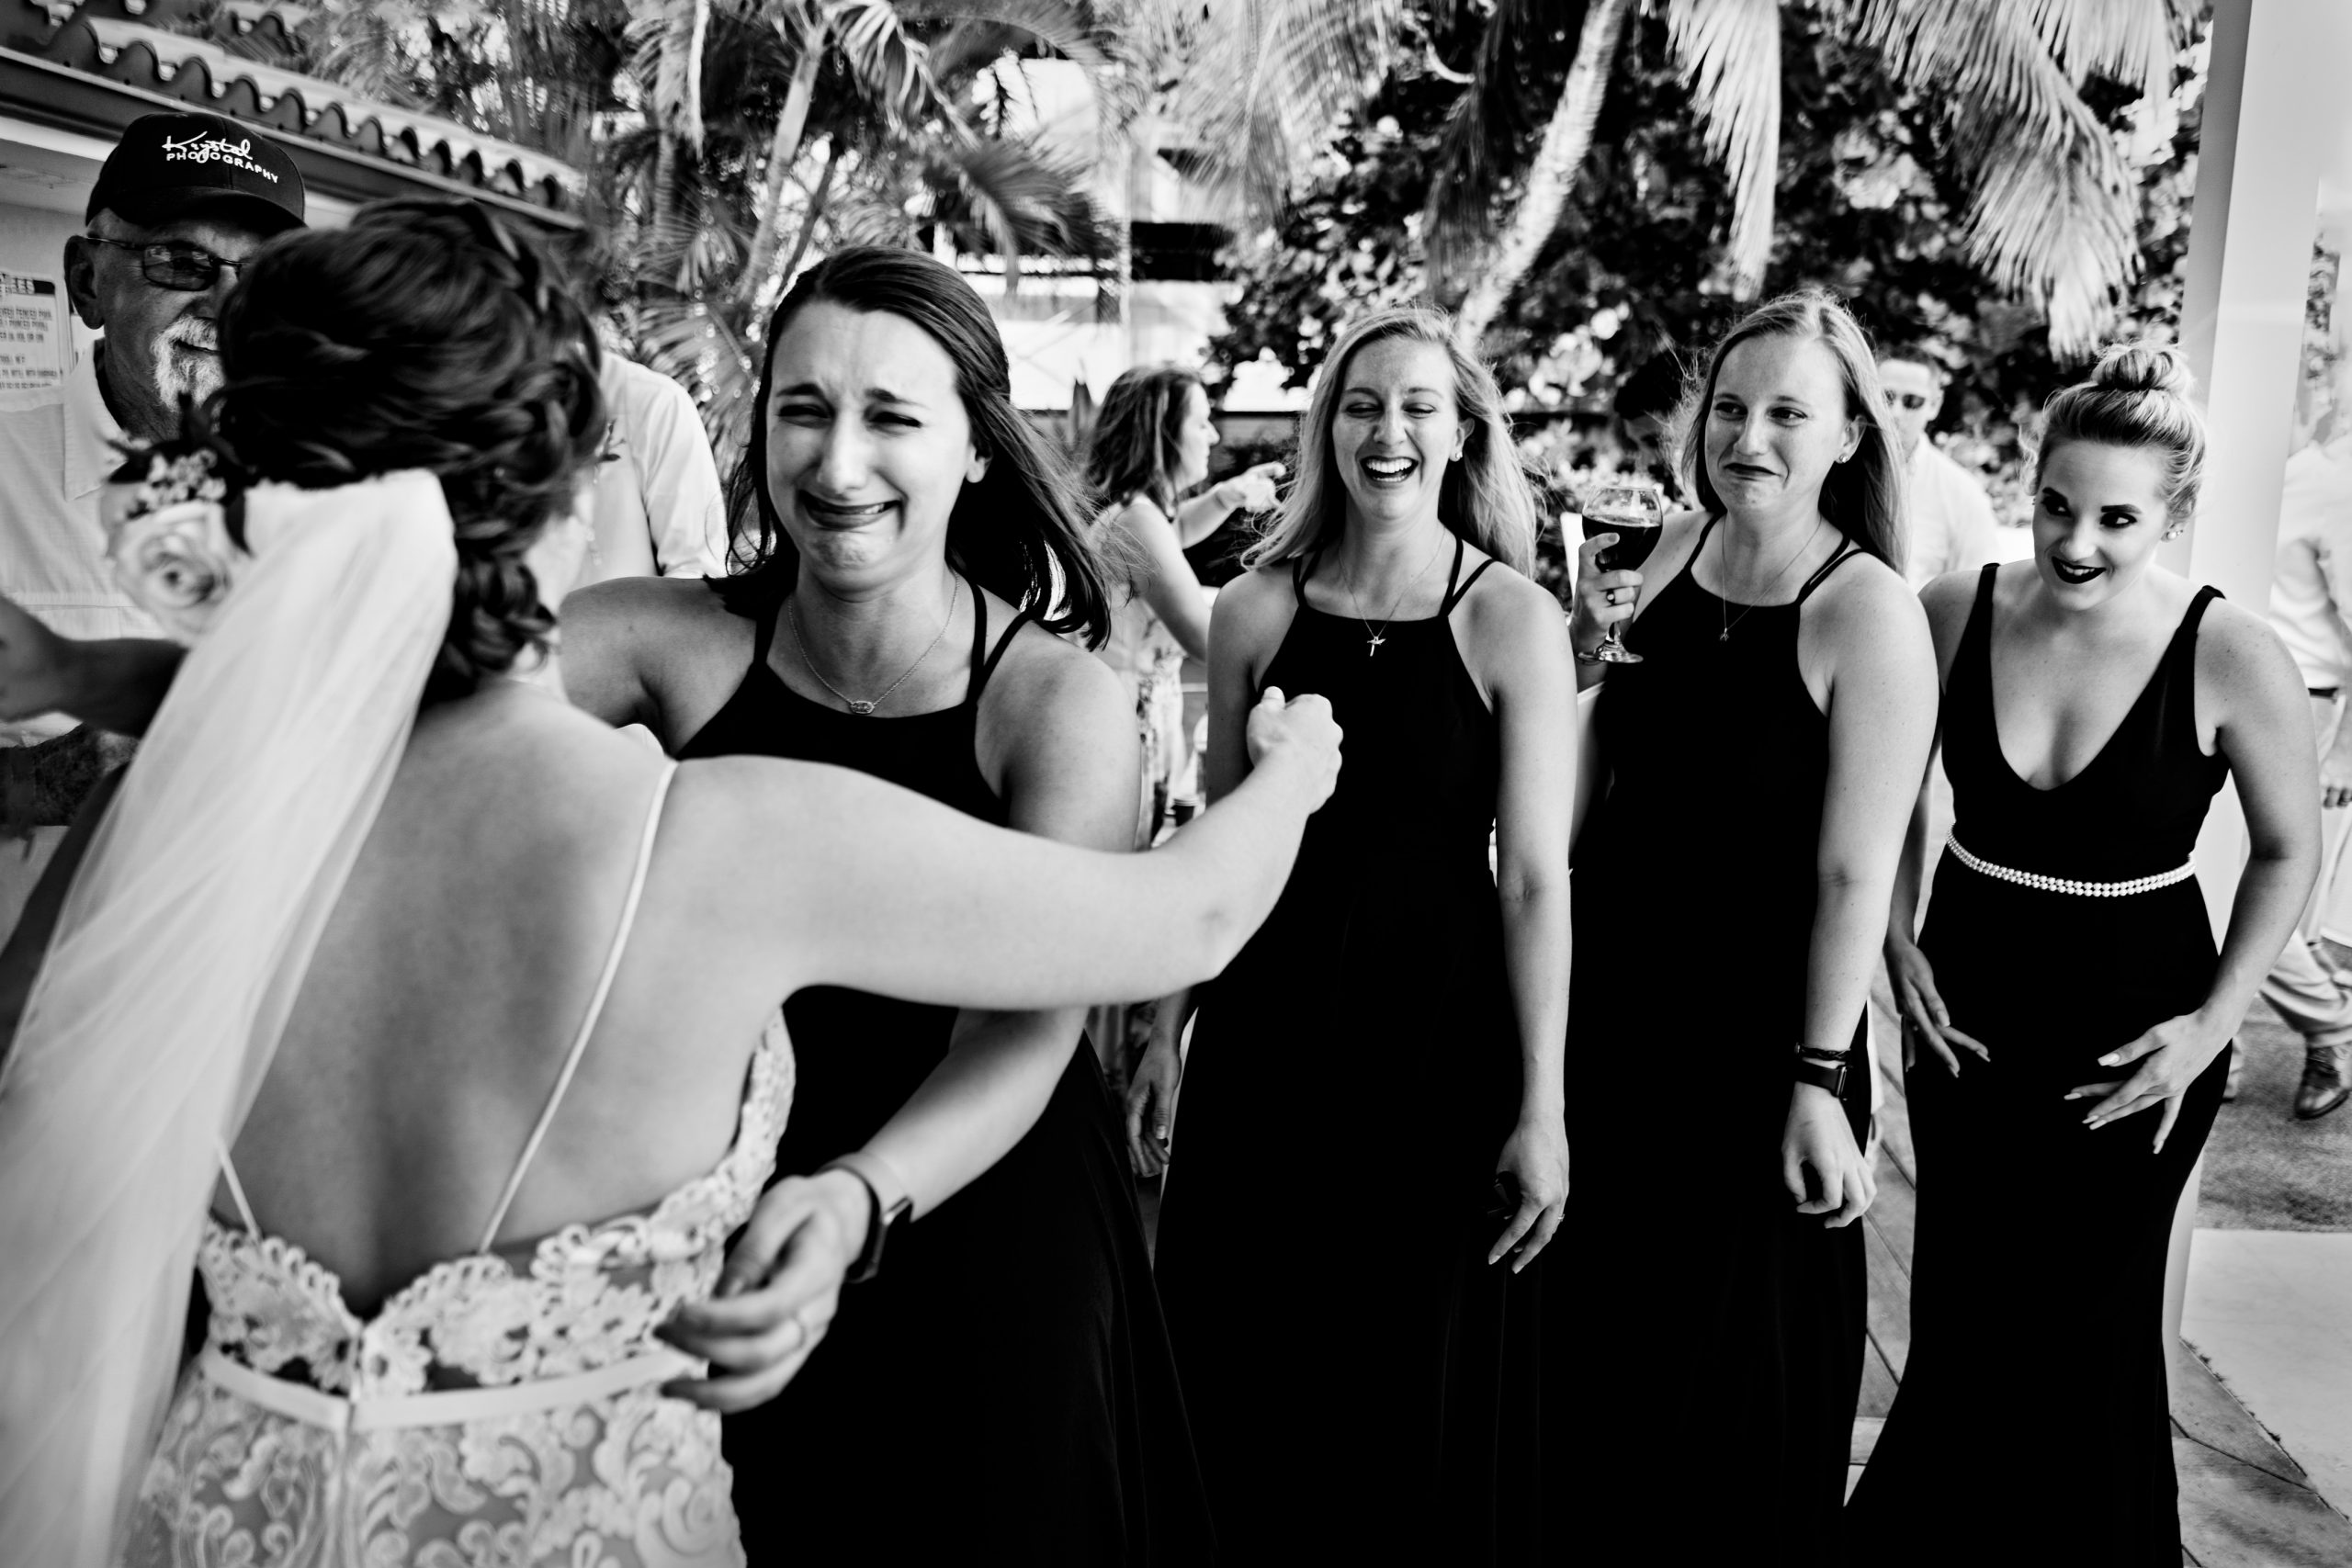 Emotional bridesmaids meet with the bride